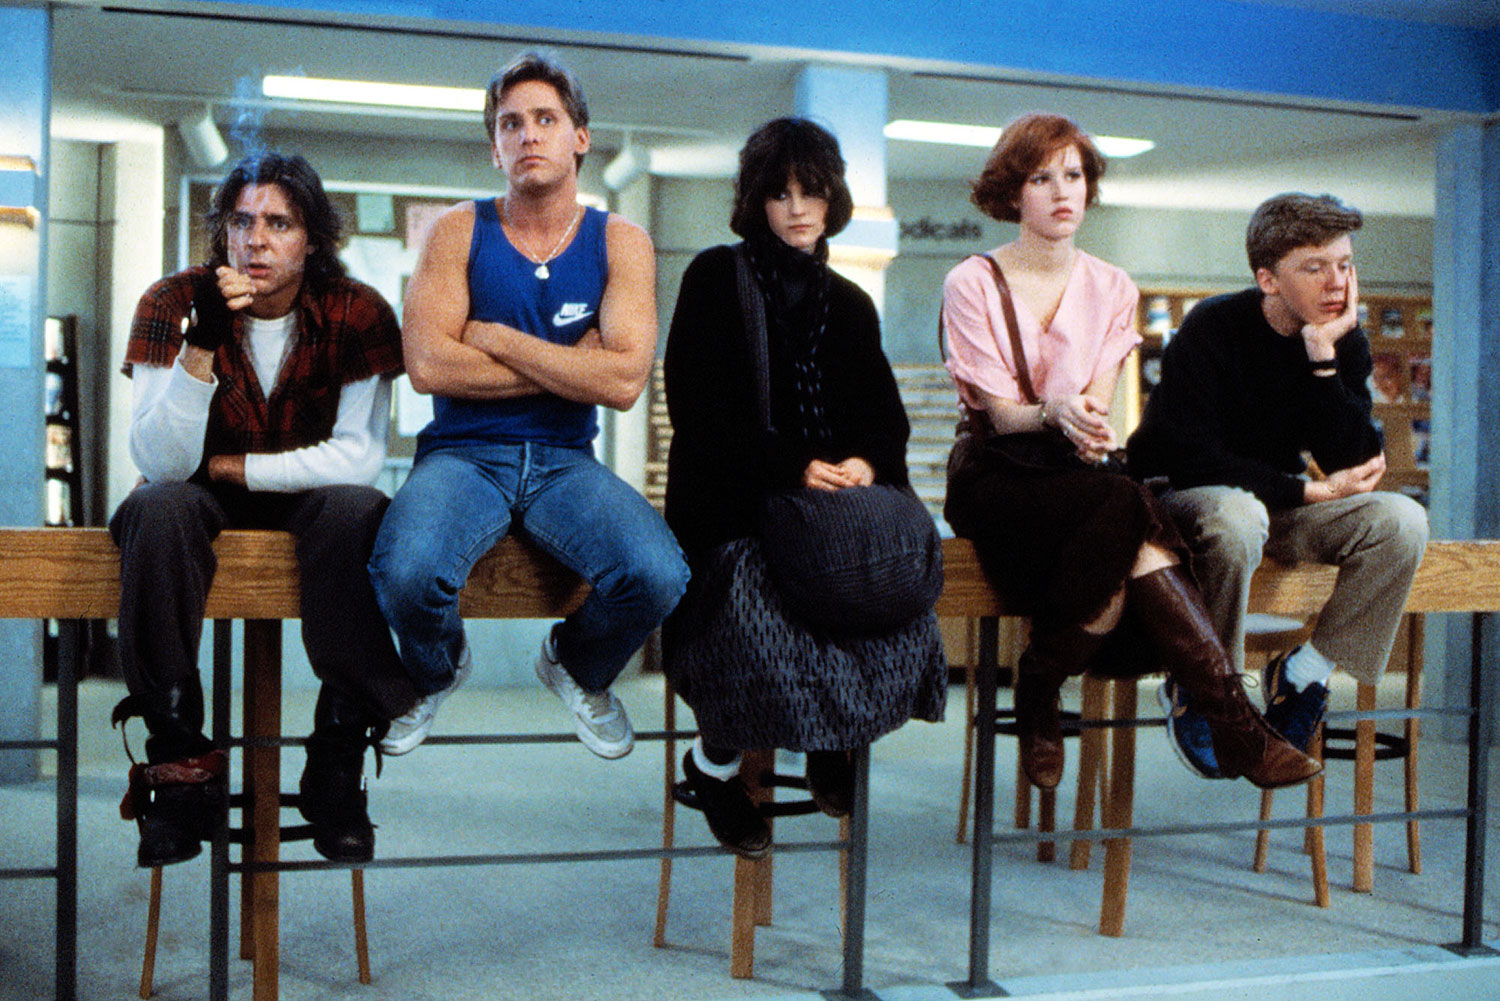 The Breakfast Club director John Hughes was interested in making The Breakfast Club 2, where the characters would meet literally 10 years later – to avoid a terrible sequel. Production began in 1994, but was stalled largely due to John and actor Judd Nelson's tumultuous relationship. Production was officially benched after John passed away suddenly […]